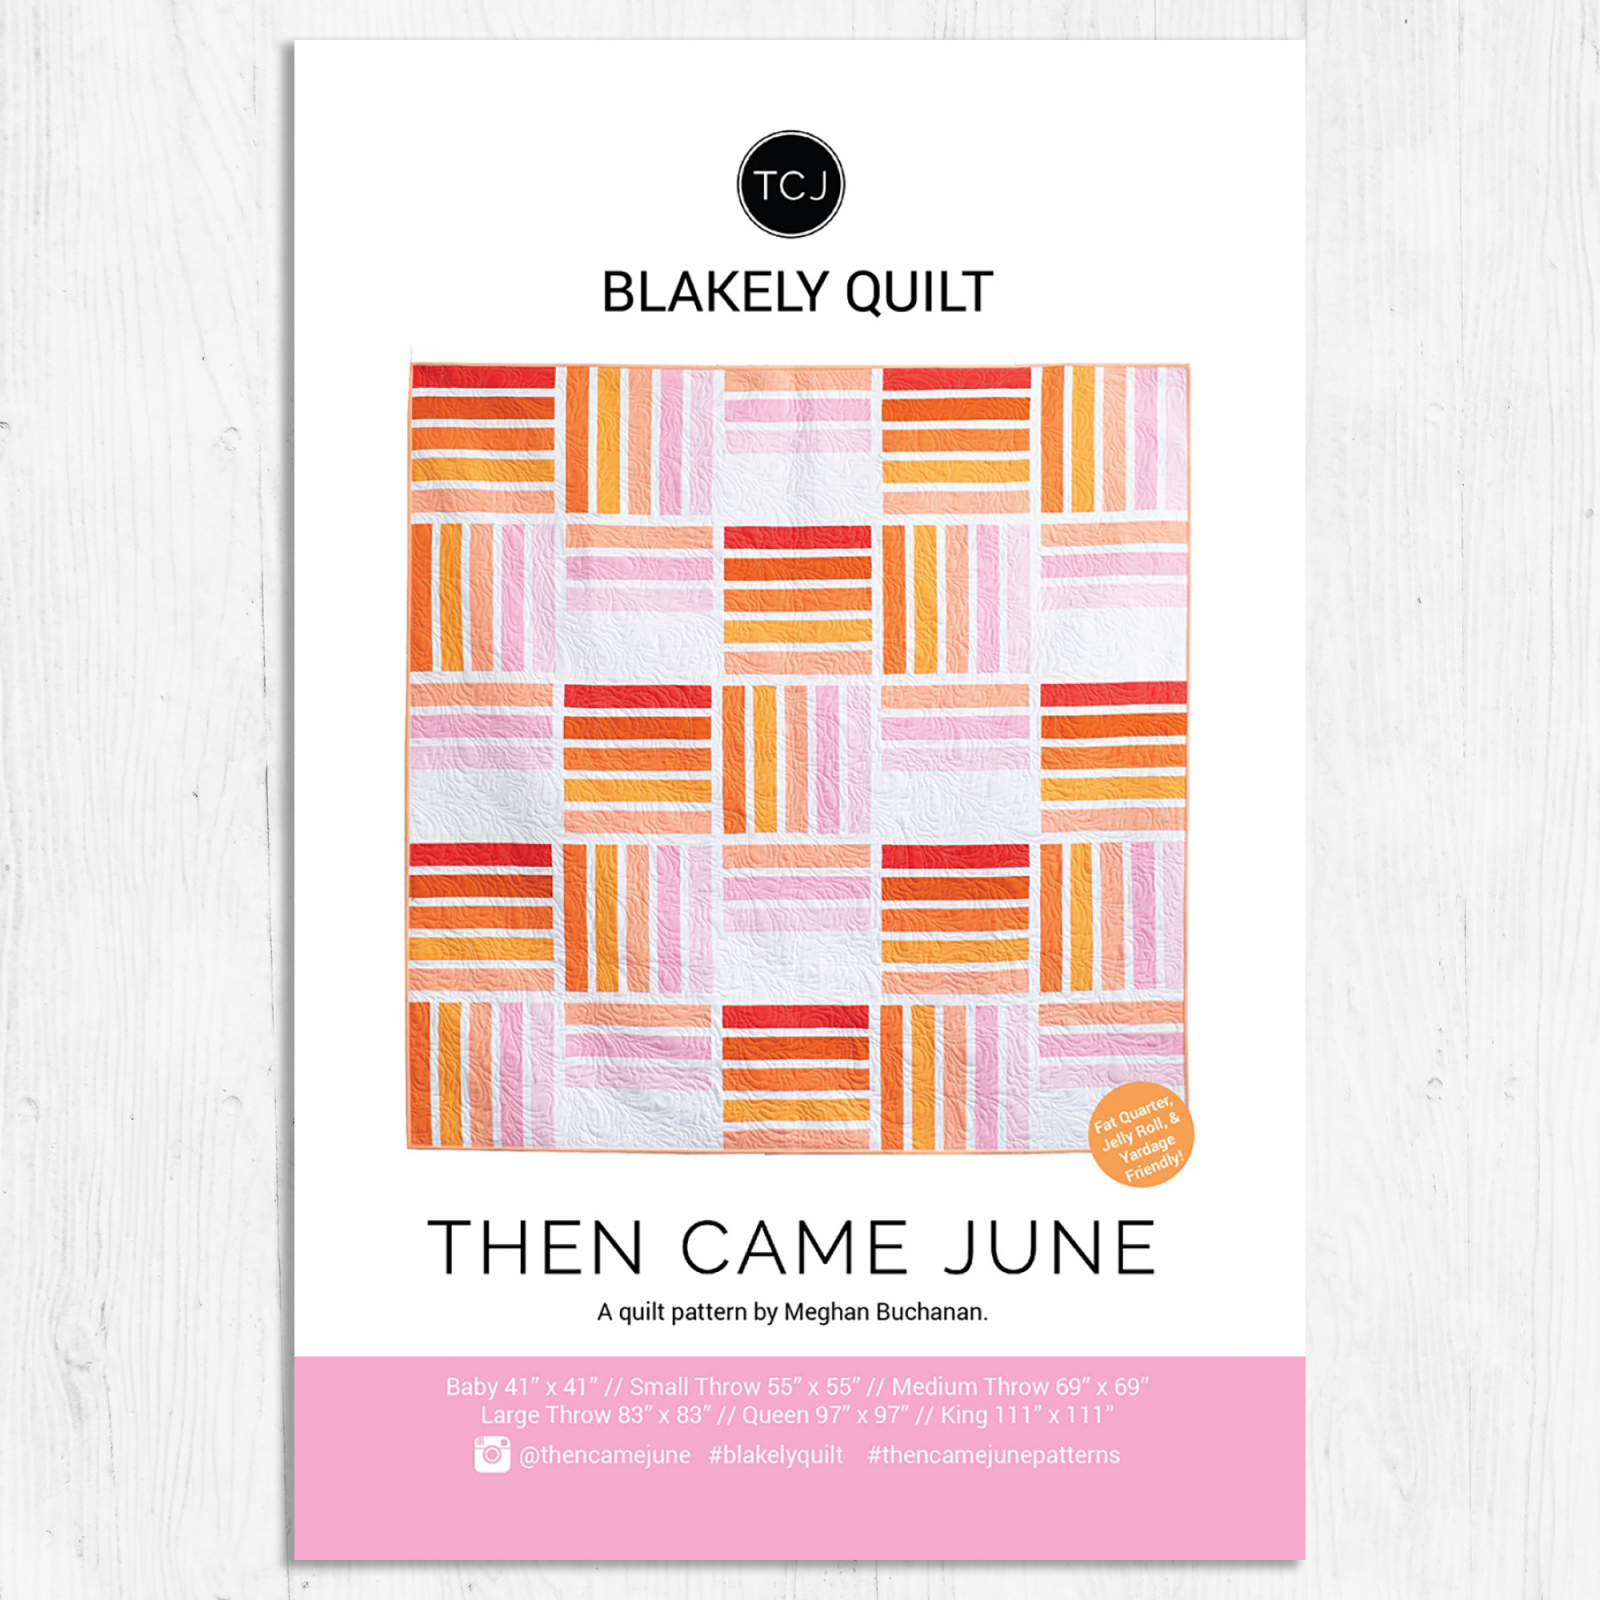 Then Came June - Blakely Quilt